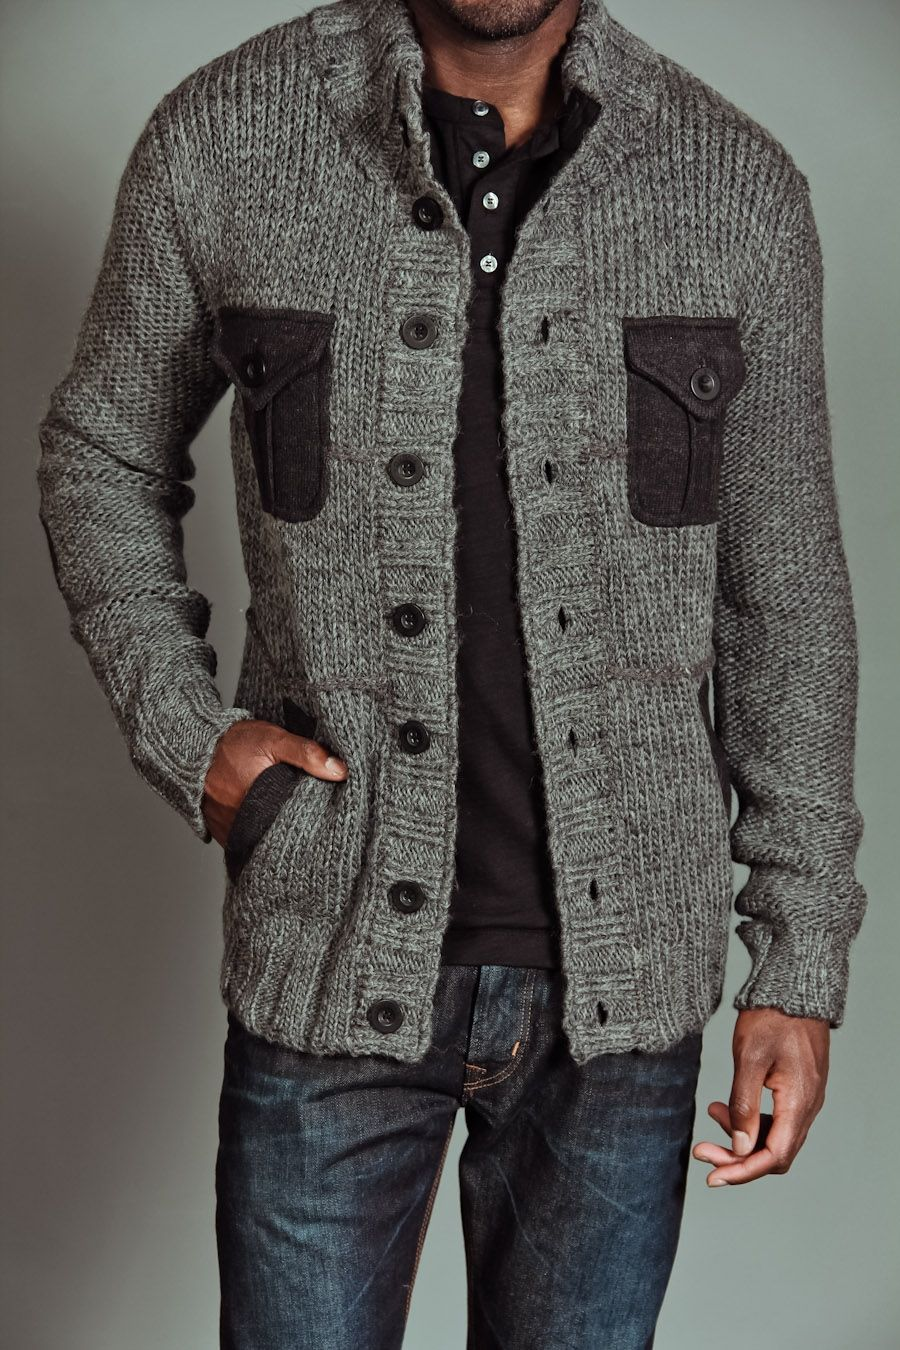 Division E Chunky Cardigan Sweater with Novelty Pockets Charcoal ...